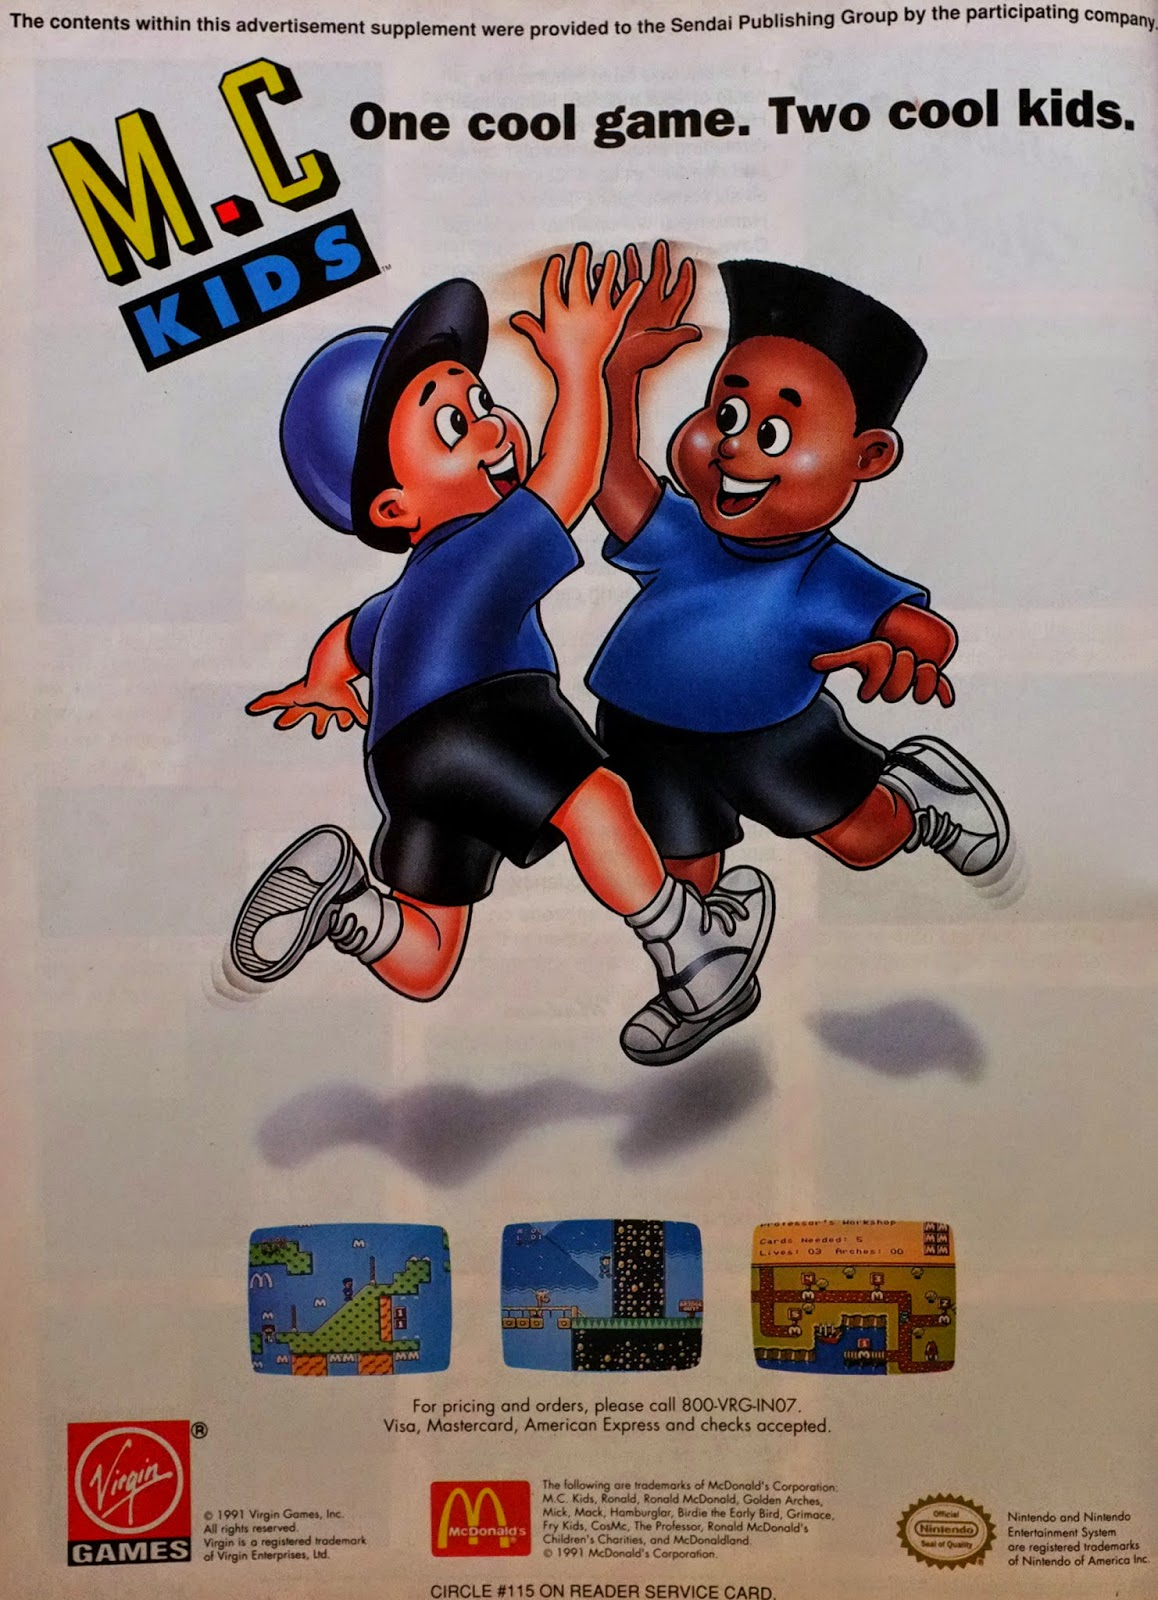 McKids for NES advertisement